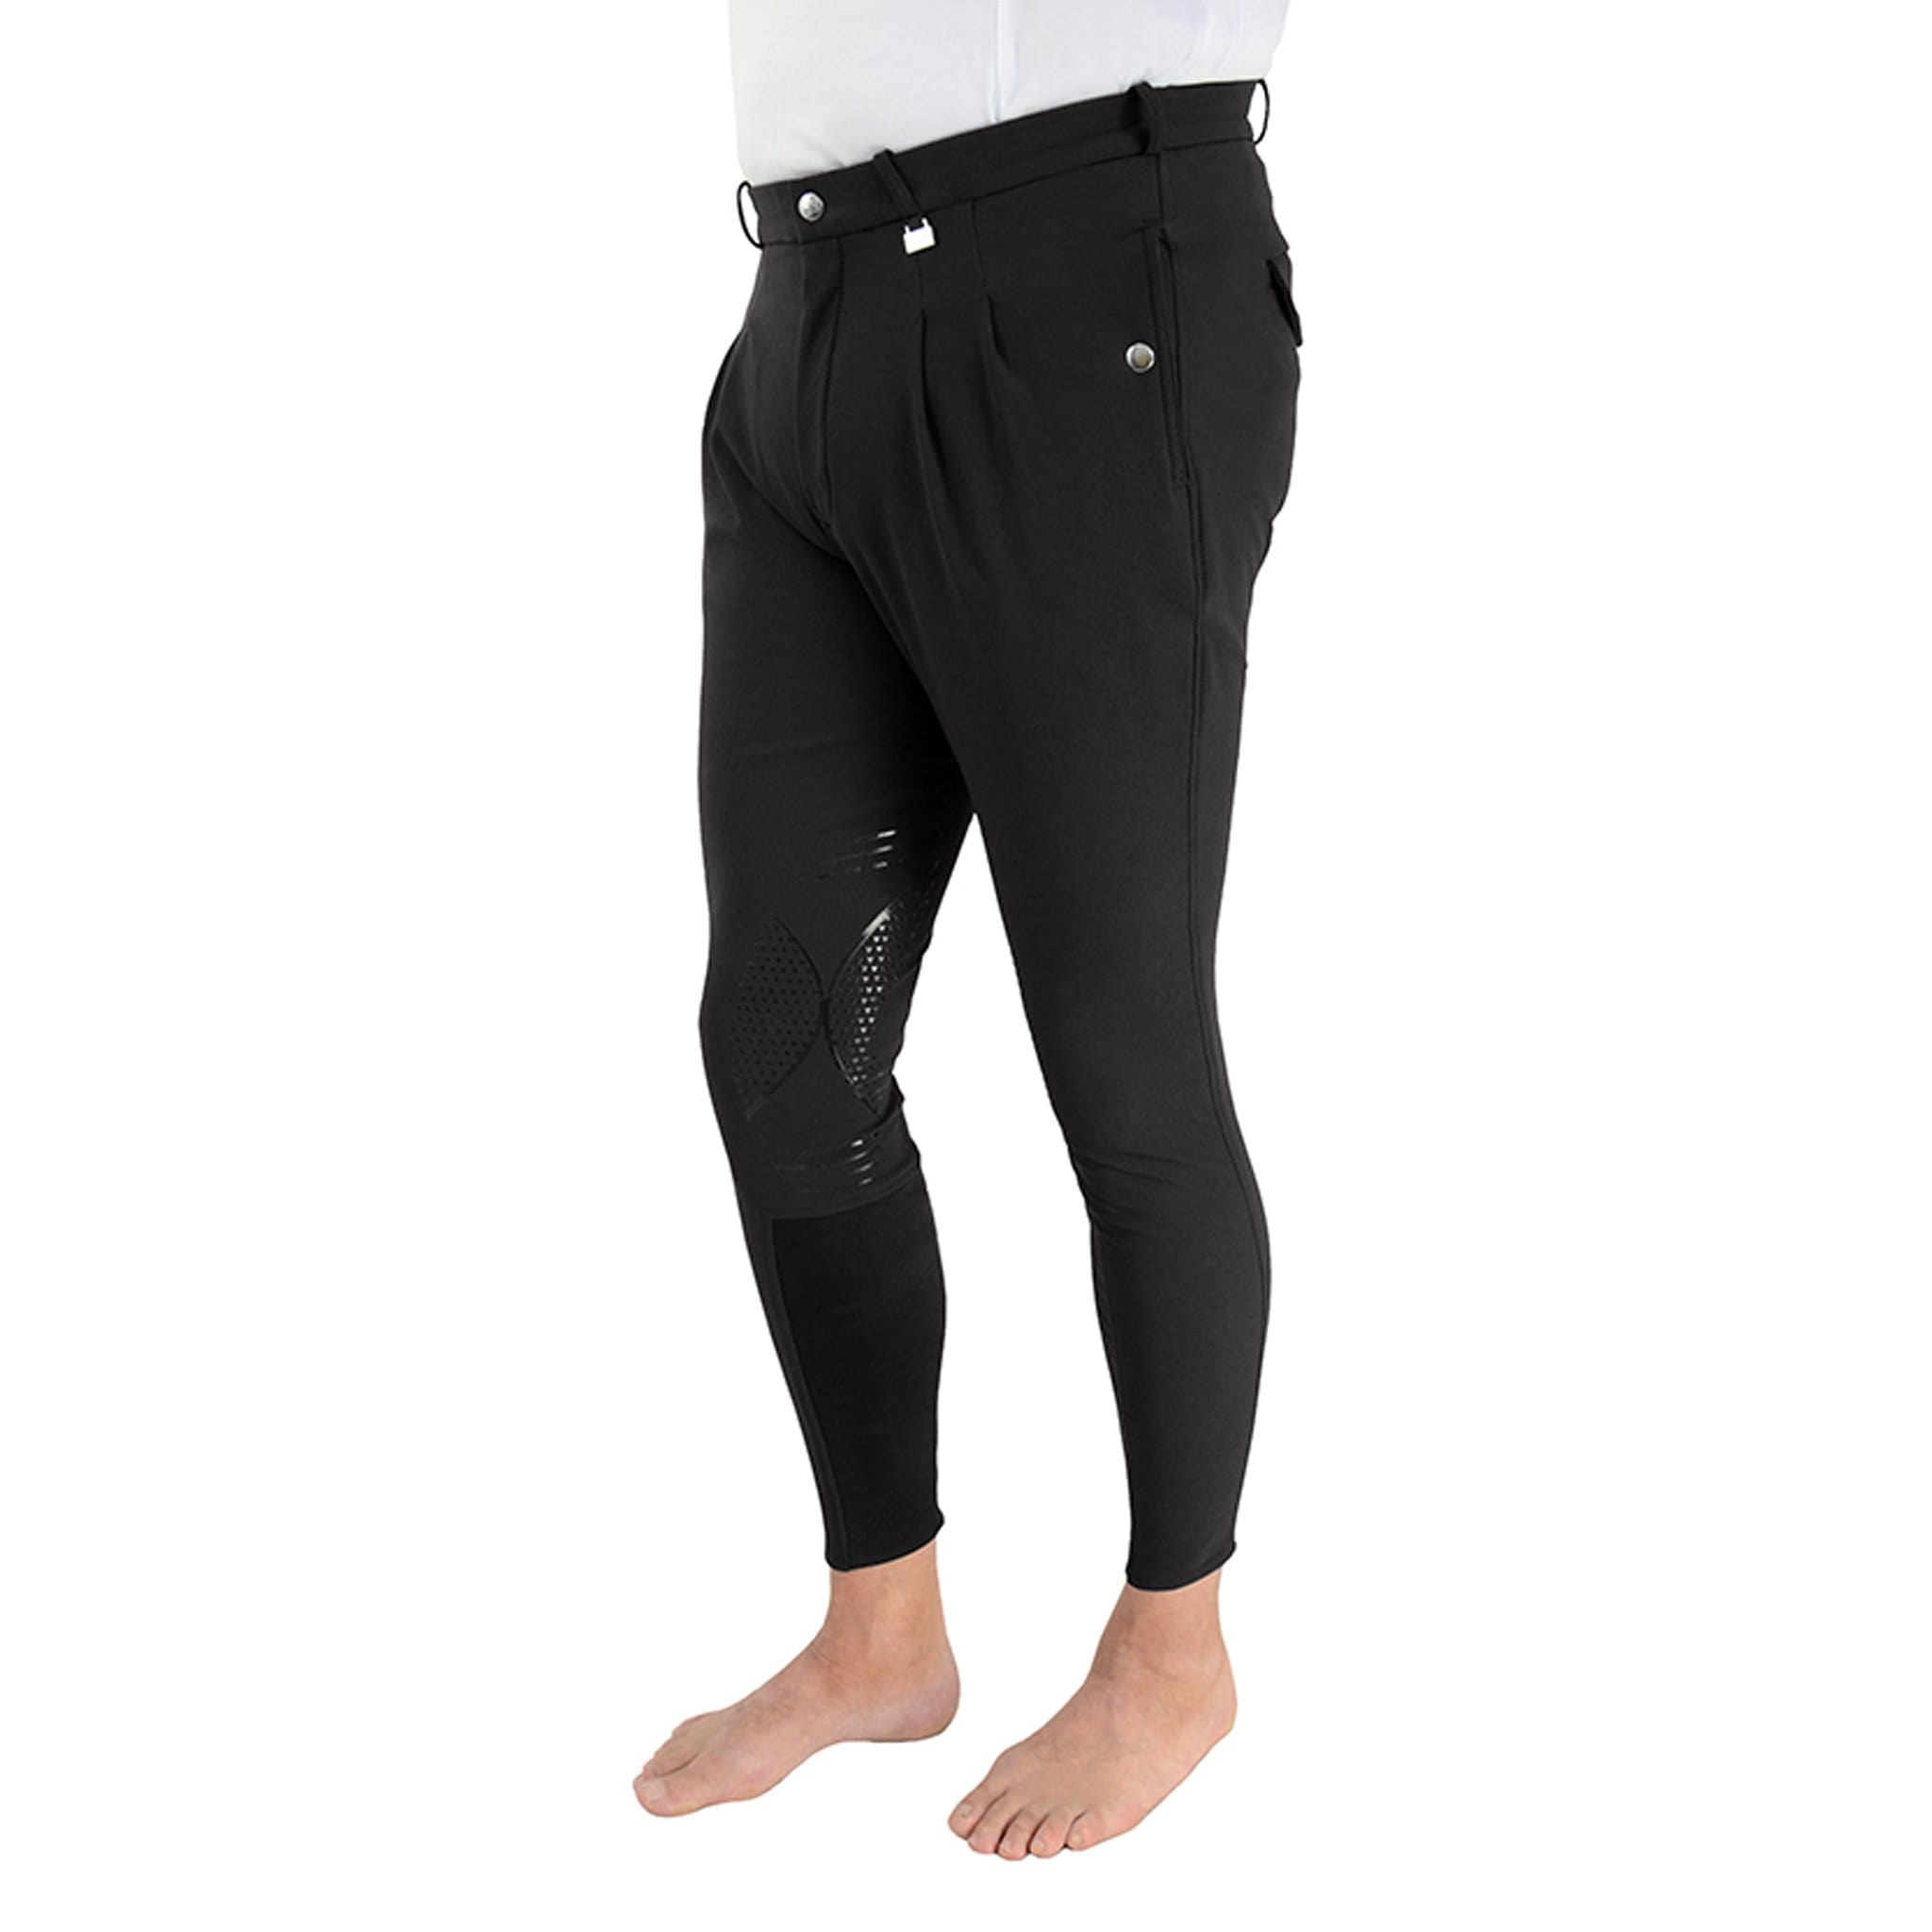 HyPERFORMANCE Men's Harrogate Silicone Knee Patch Breeches 26695 Black Front